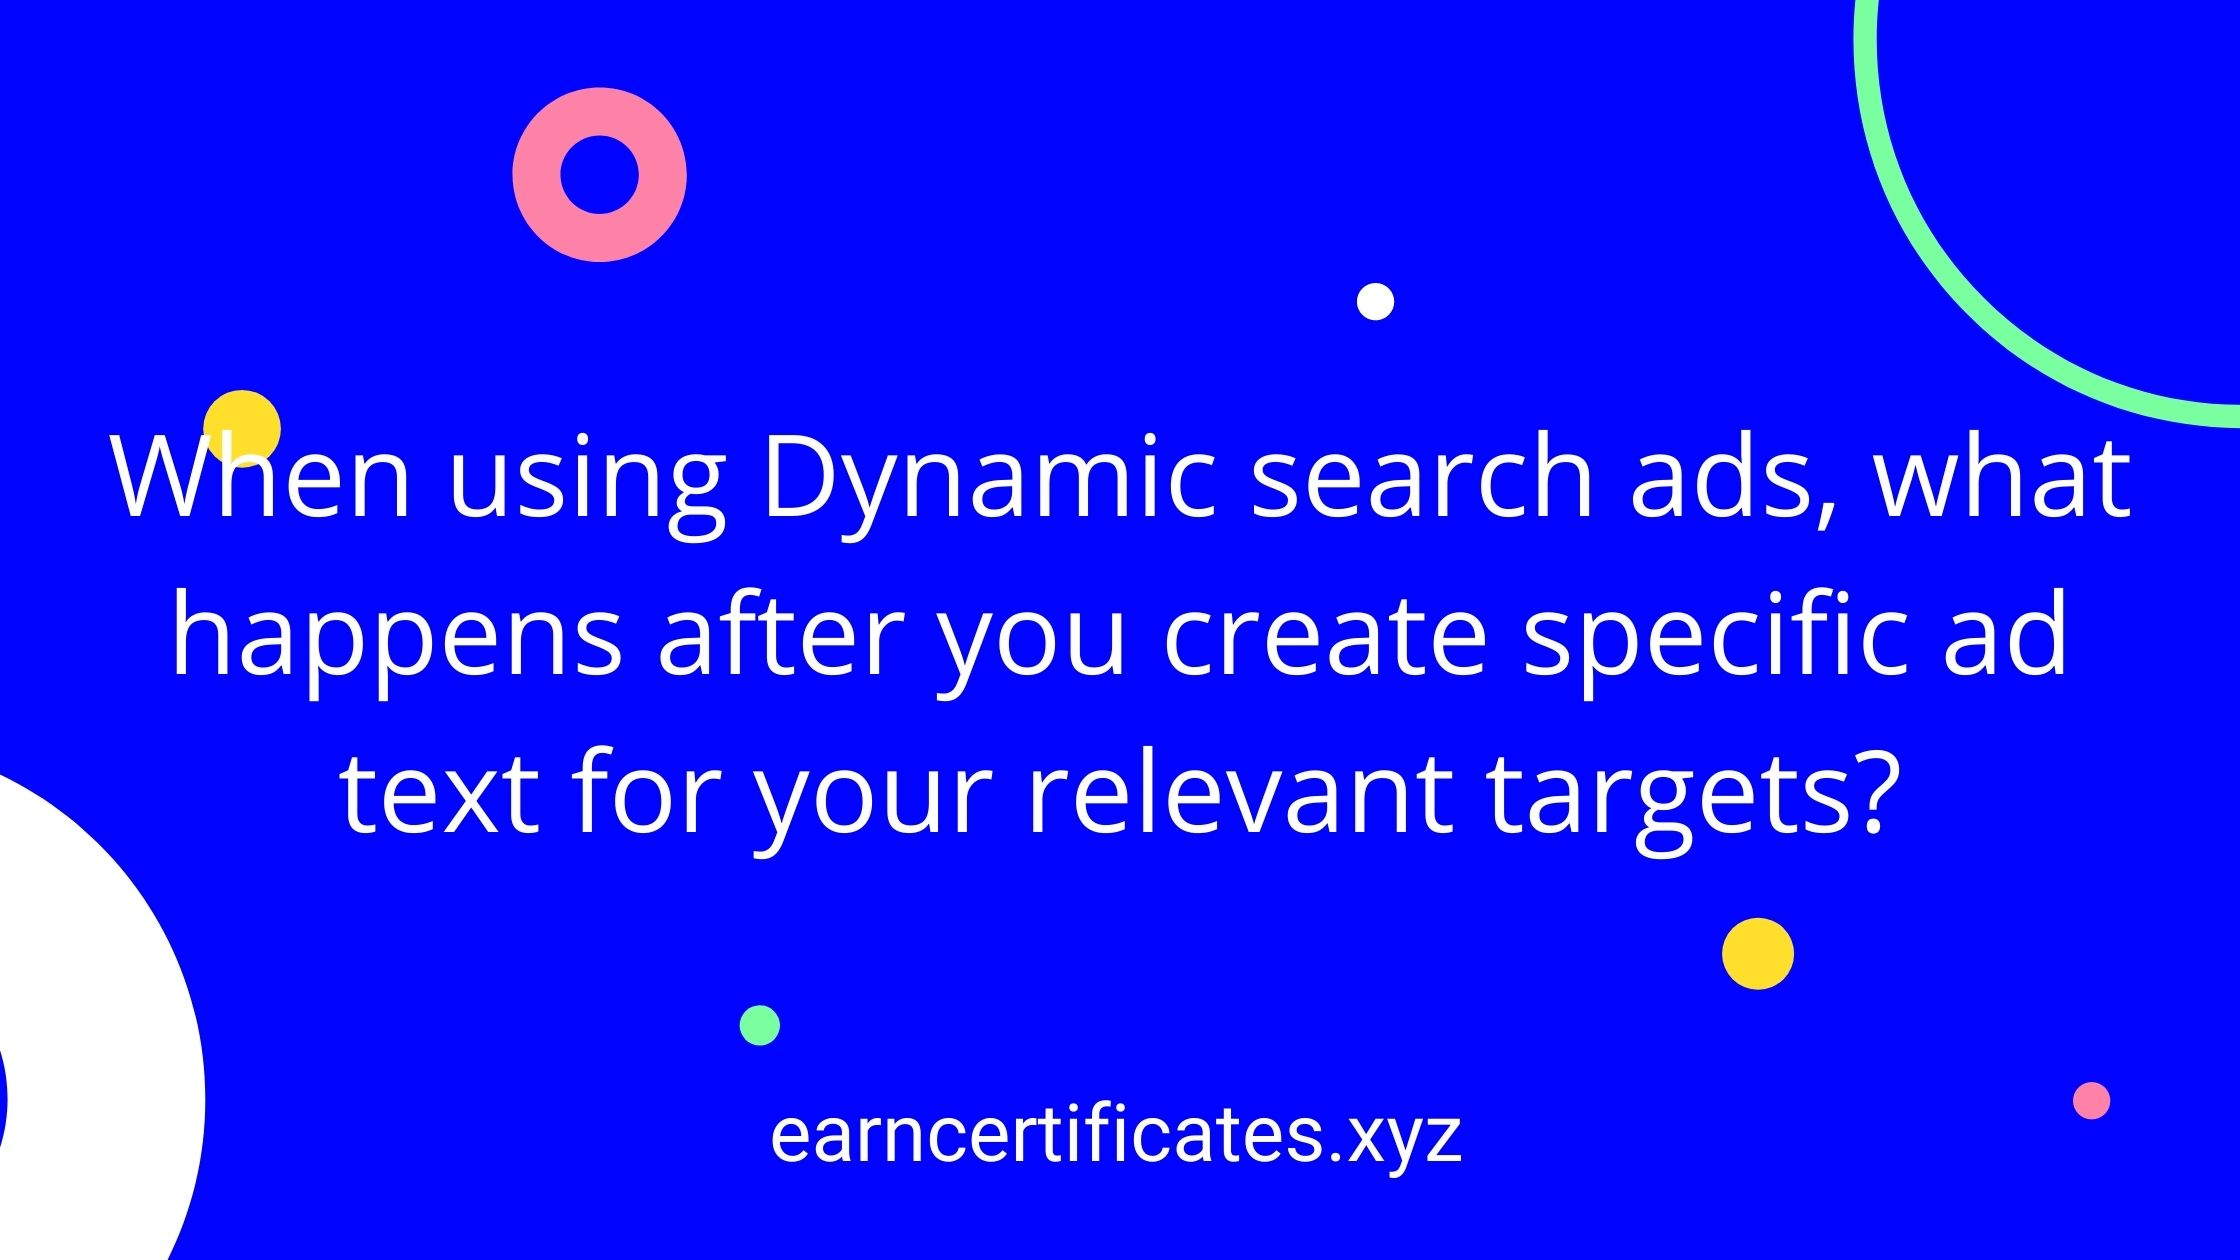 When using Dynamic search ads, what happens after you create specific ad text for your relevant targets?